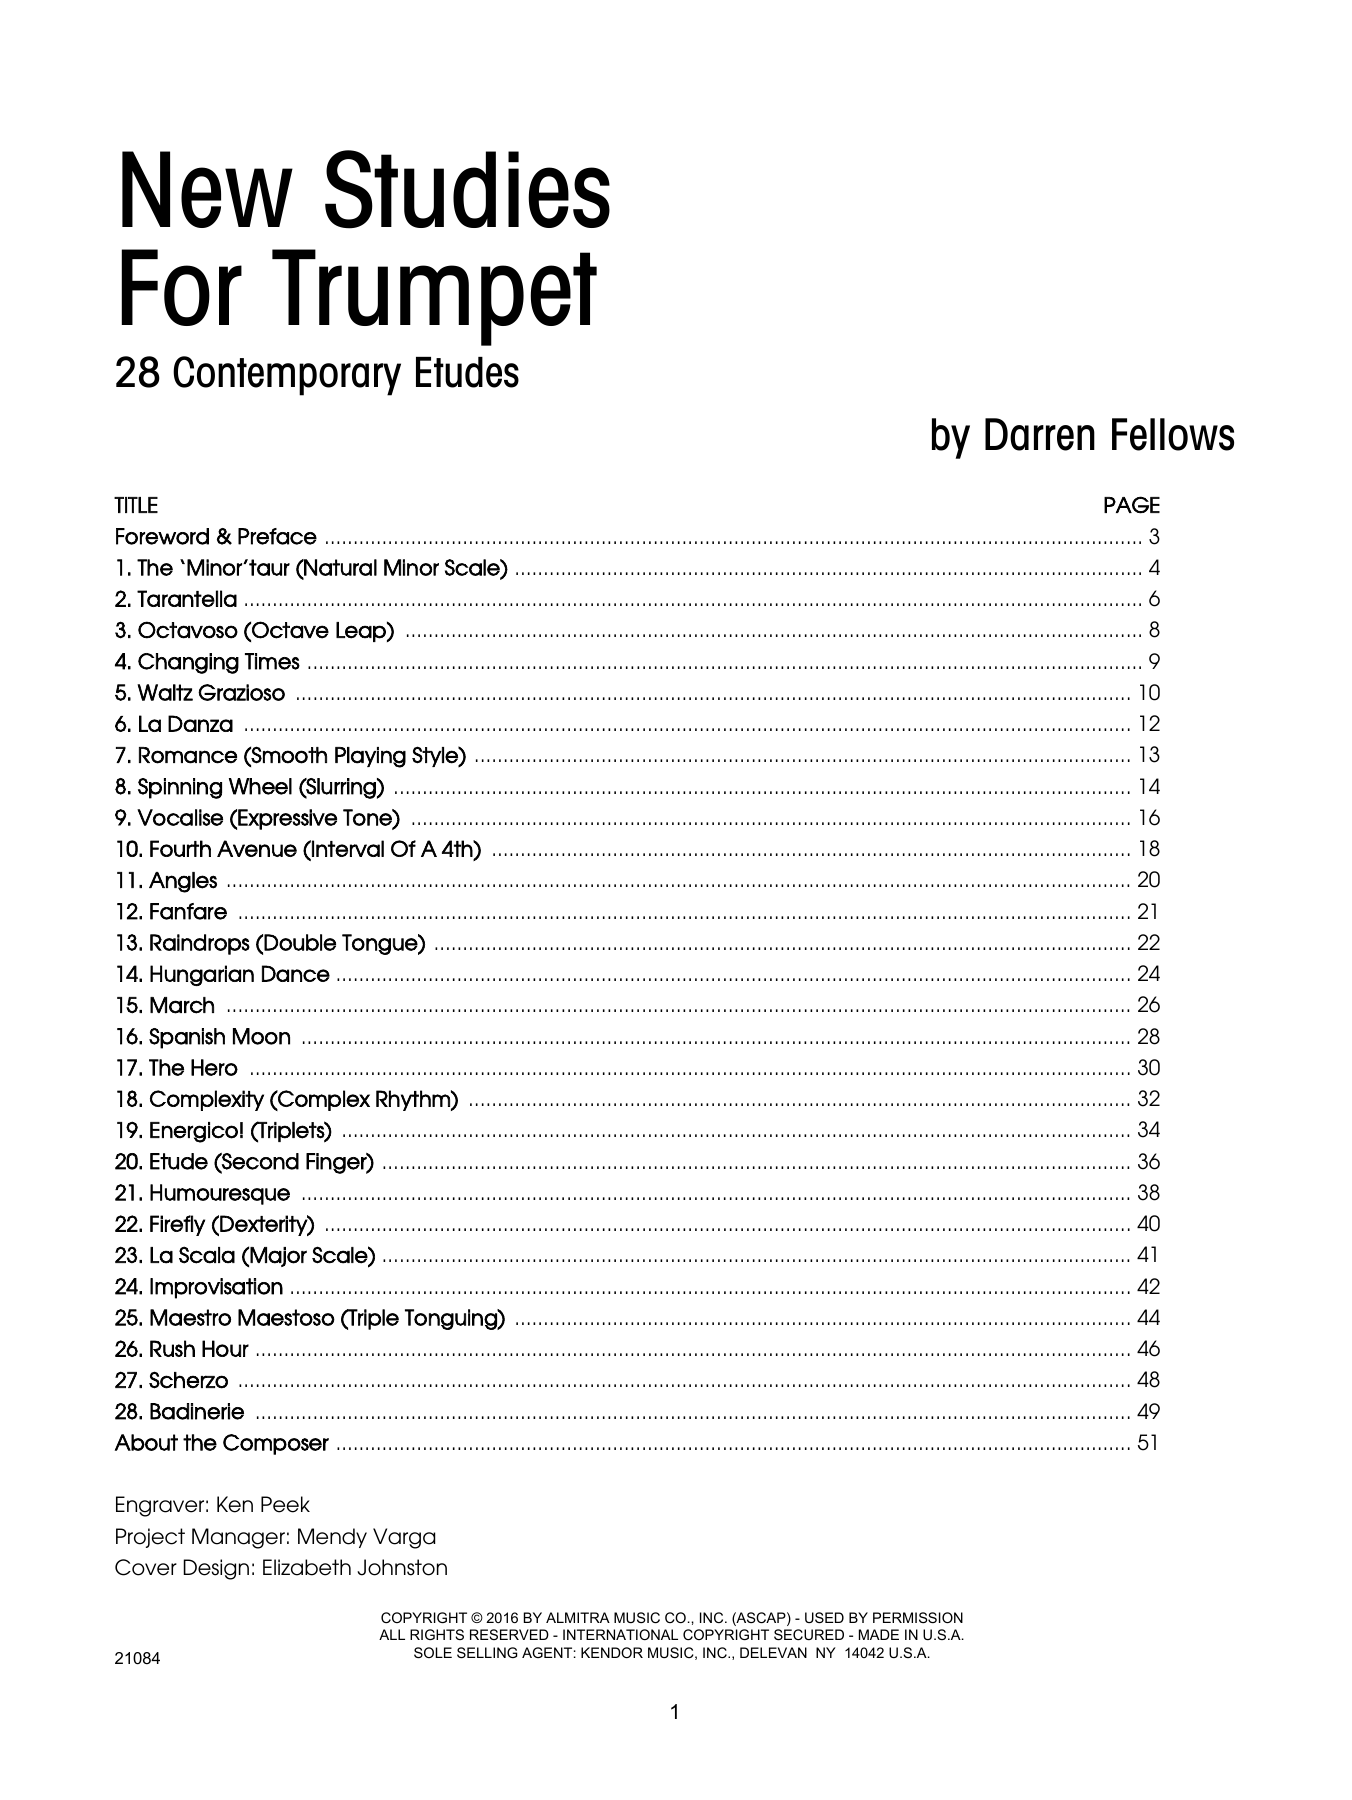 New Studies For Trumpet, 28 Contemporary Etudes Partituras Digitales